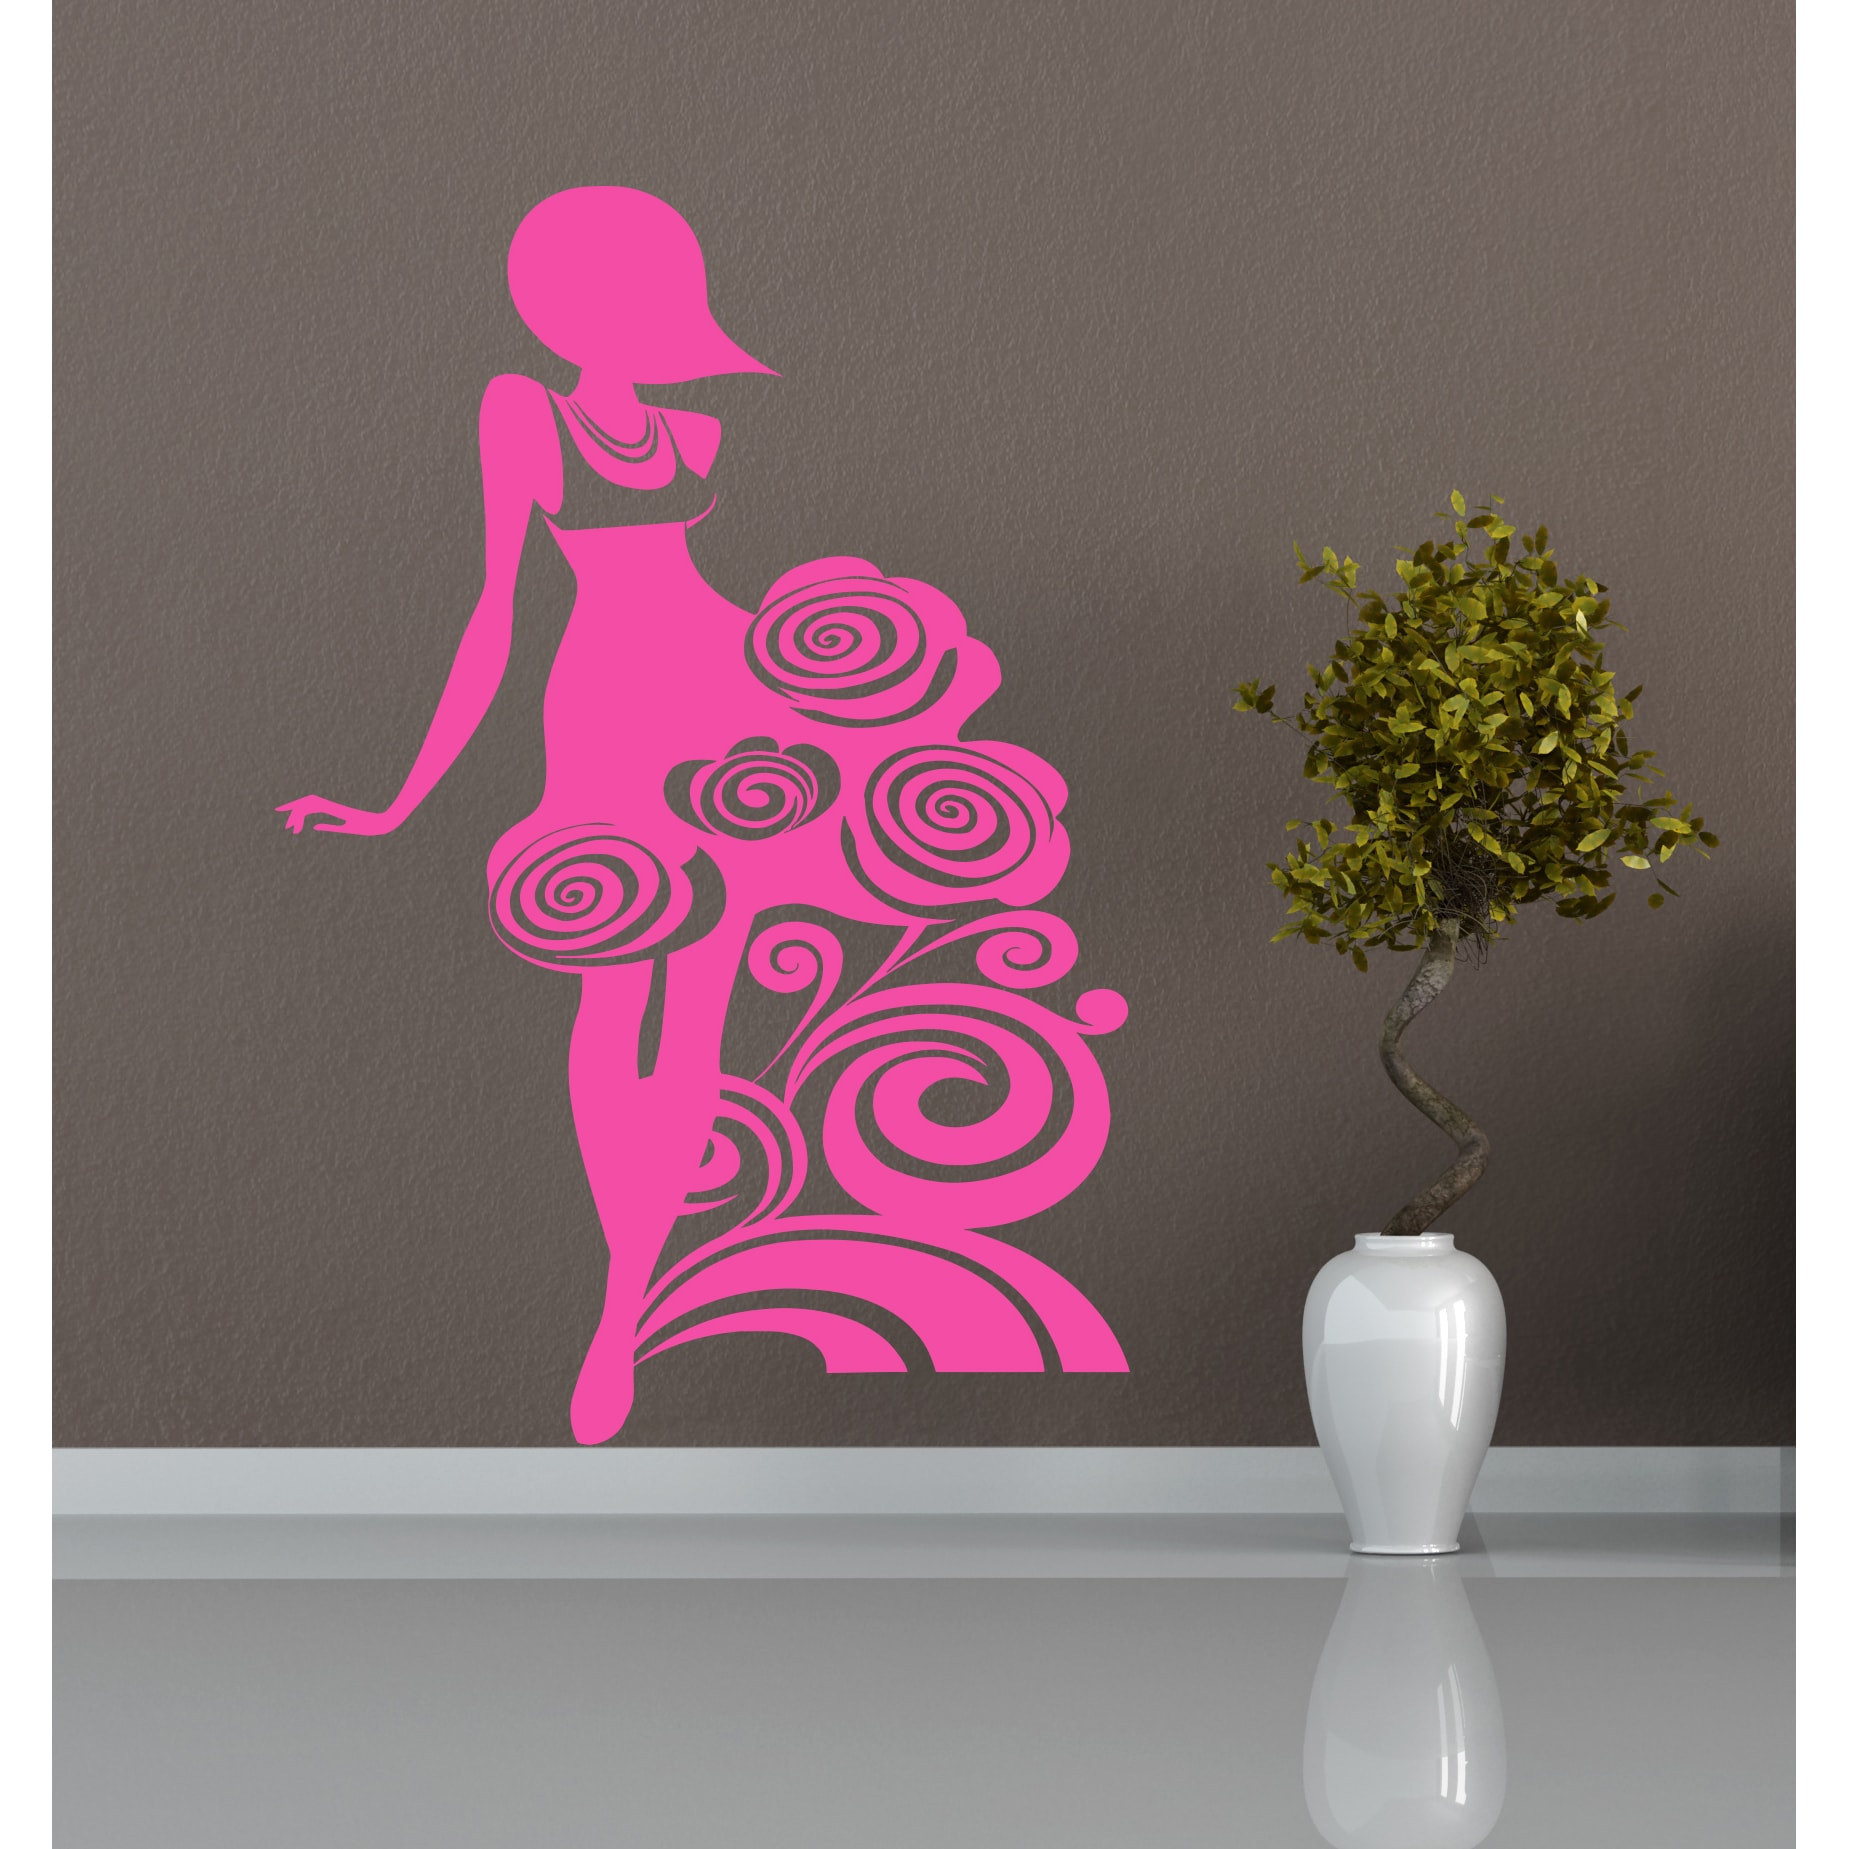 Beautiful Girl Lady Flowers Wall Art Sticker Decal Pink 724999536158 - Beautiful-wall-stickers-to-decorate-your-house